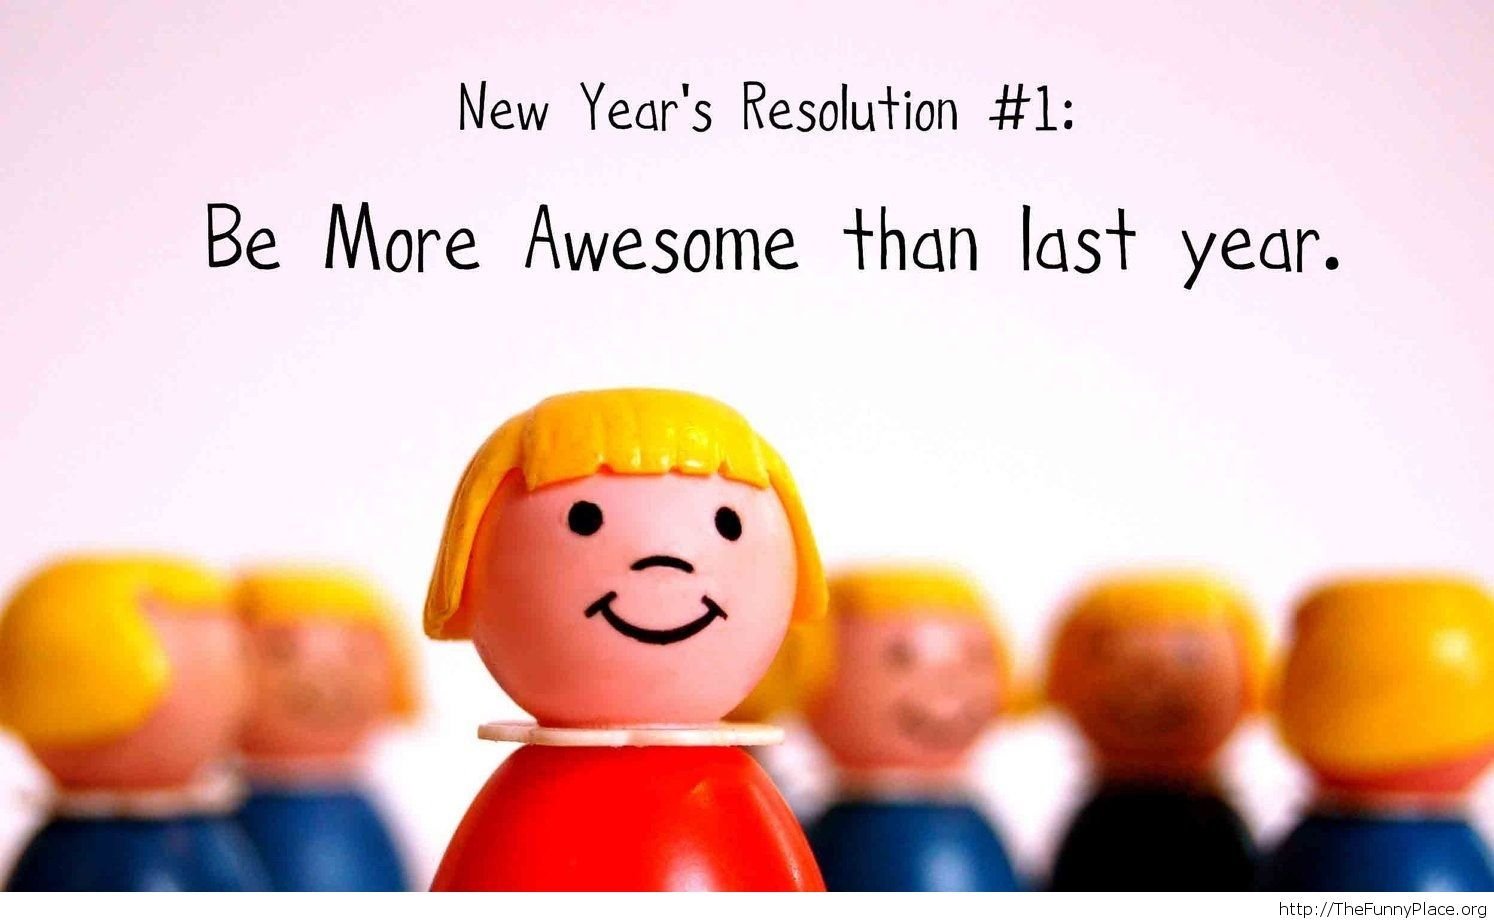 New Year's resolution for me